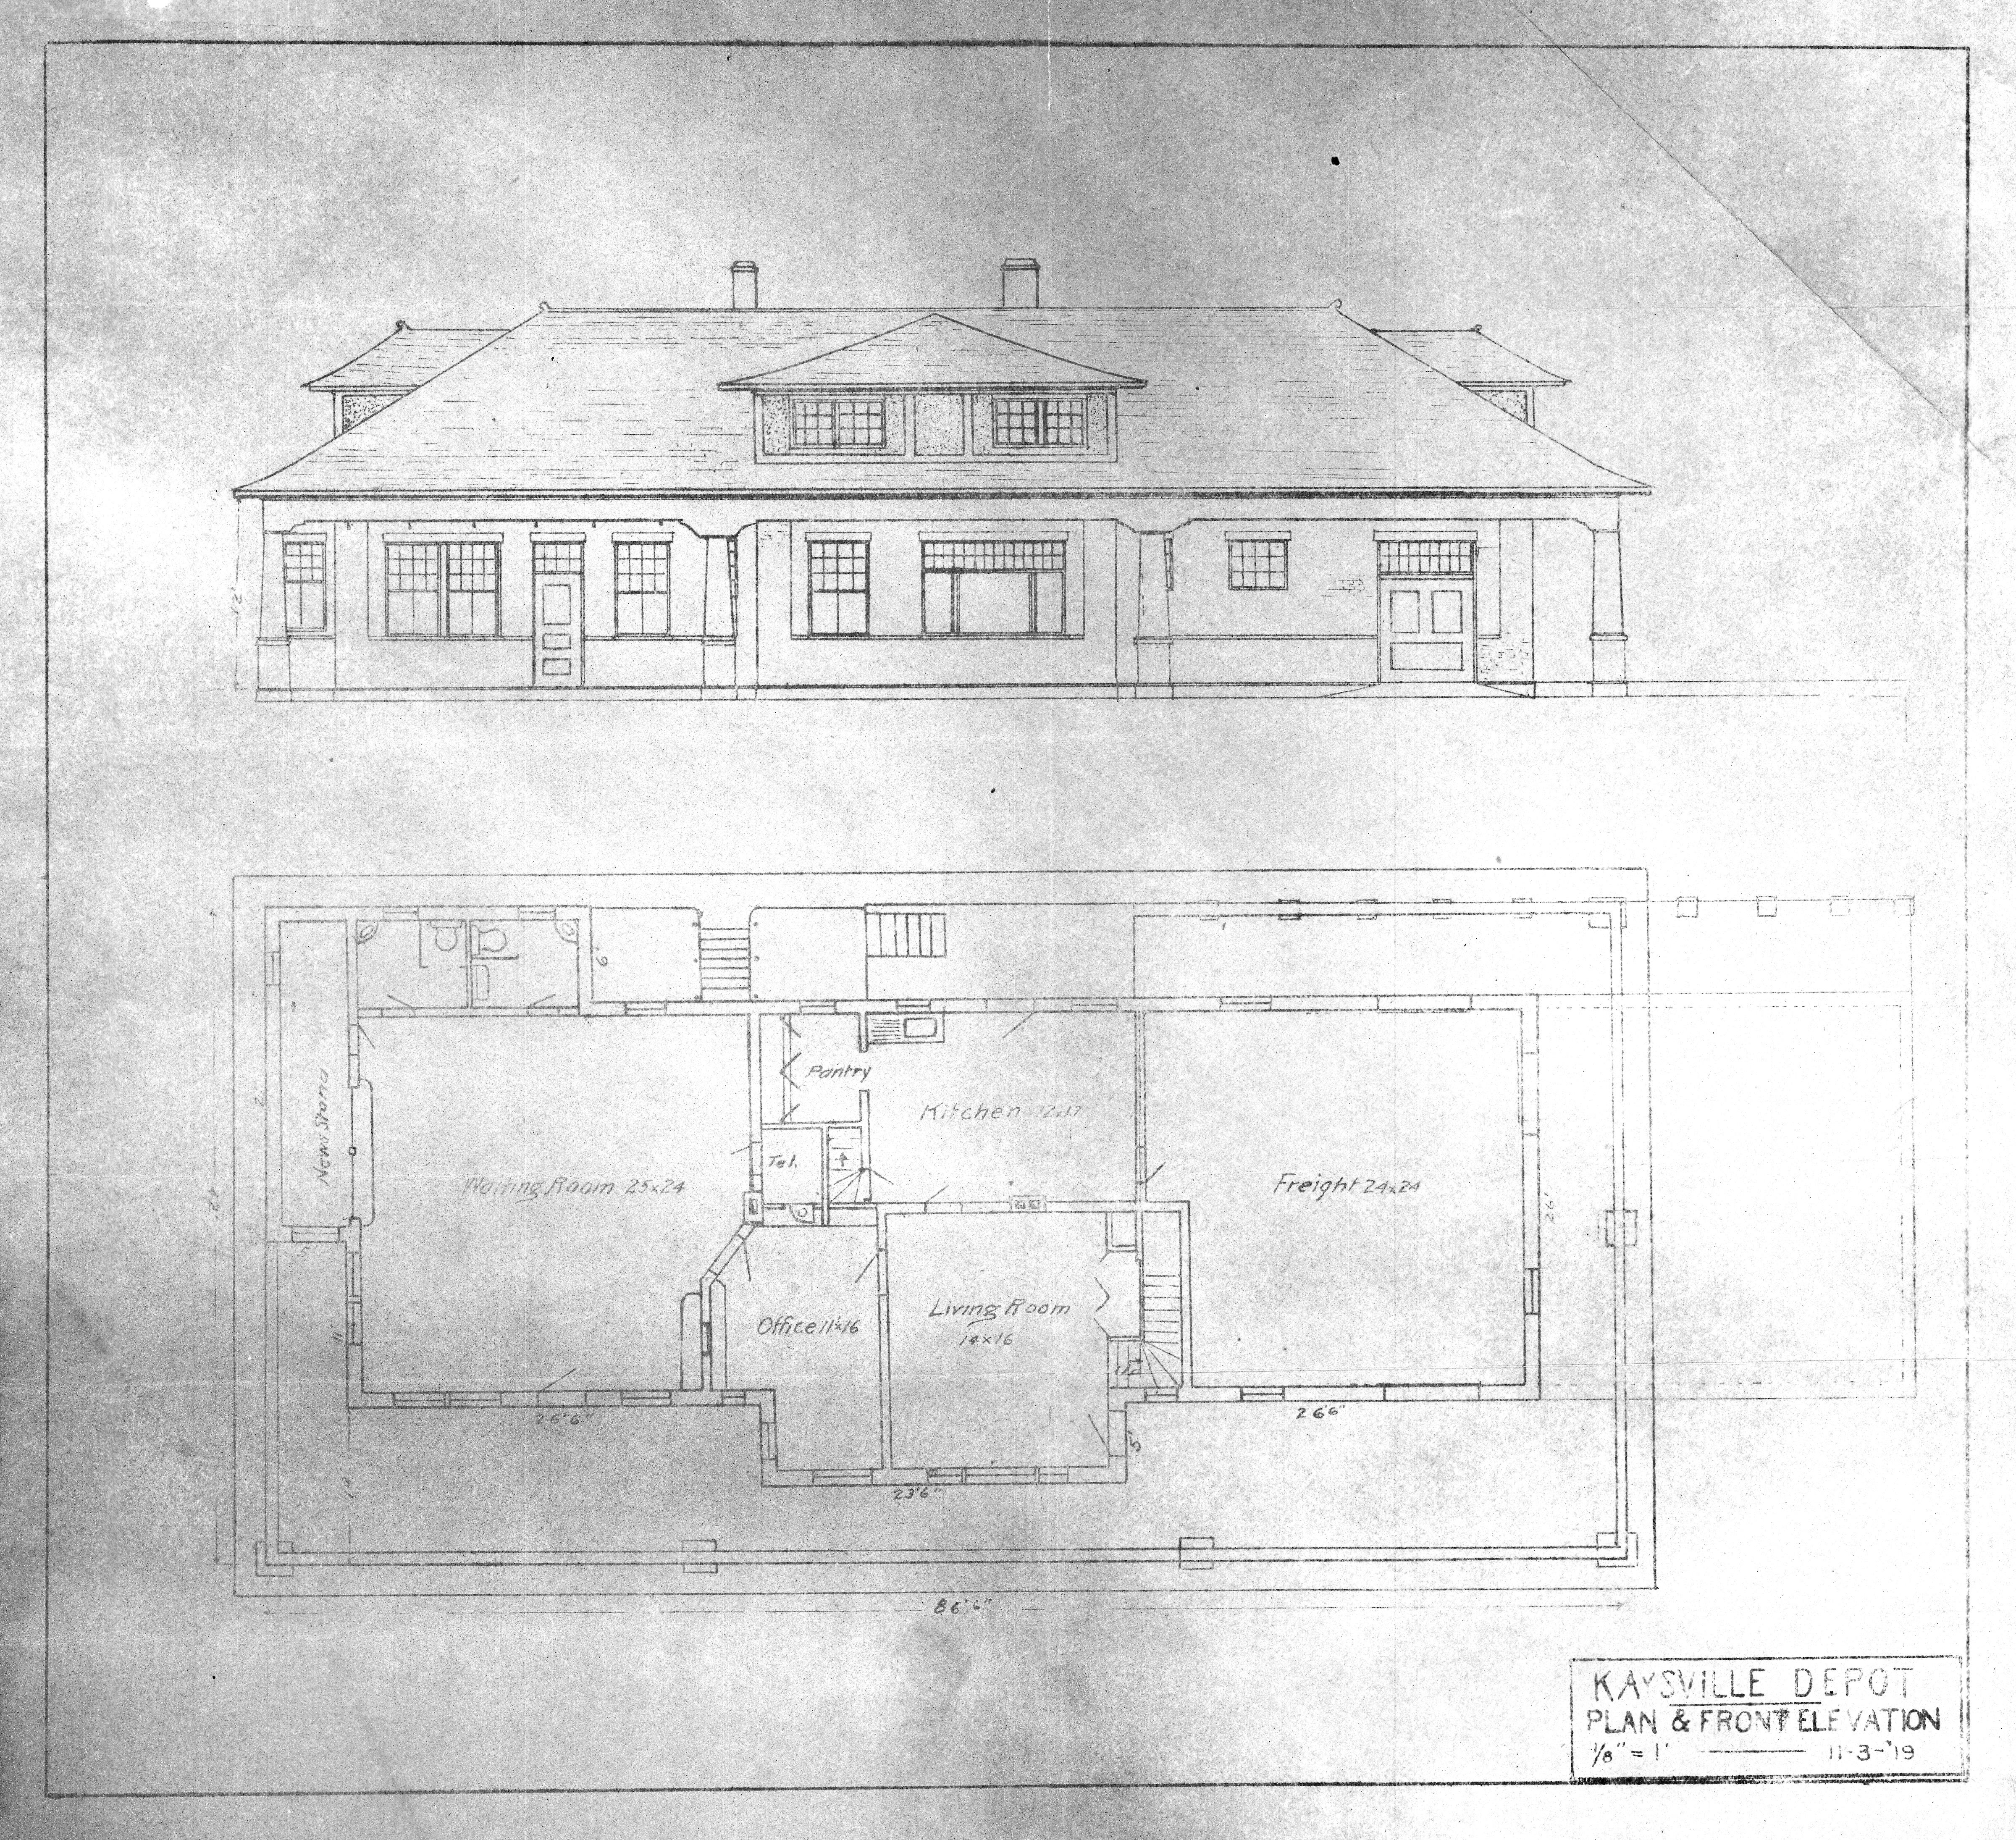 Scanned Drawings Index on small church floor plans, architecture house plans, model railroad engine house plans, railroad house floor plan, railroad building drawings, railroad depot furniture, model rail plans, vintage railroad depot plans, o 27 scale track plans, railroad platform plans, railroad depot drawings, train depot building plans, railroad apartment floor plan, atlas plans, car plans, s gauge track plans, simple model railroad track plans,